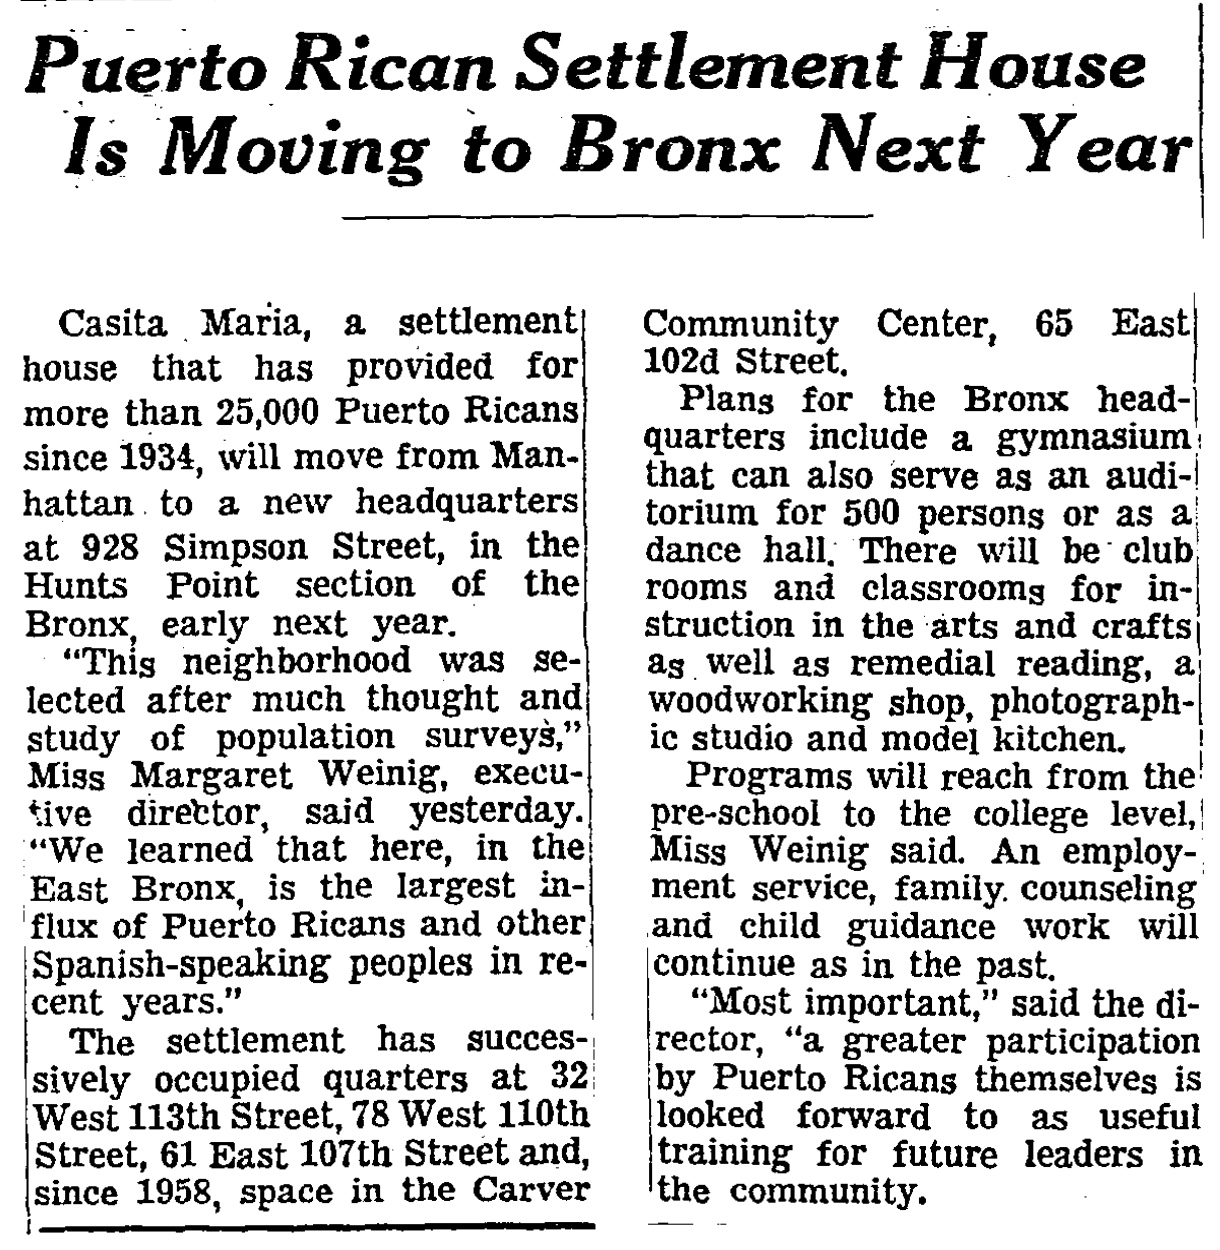 """Puerto Rican Settlement House is Moving to Bronx Next Year."" New York Times (1923-Current file), Nov 19 1961, p. 125."